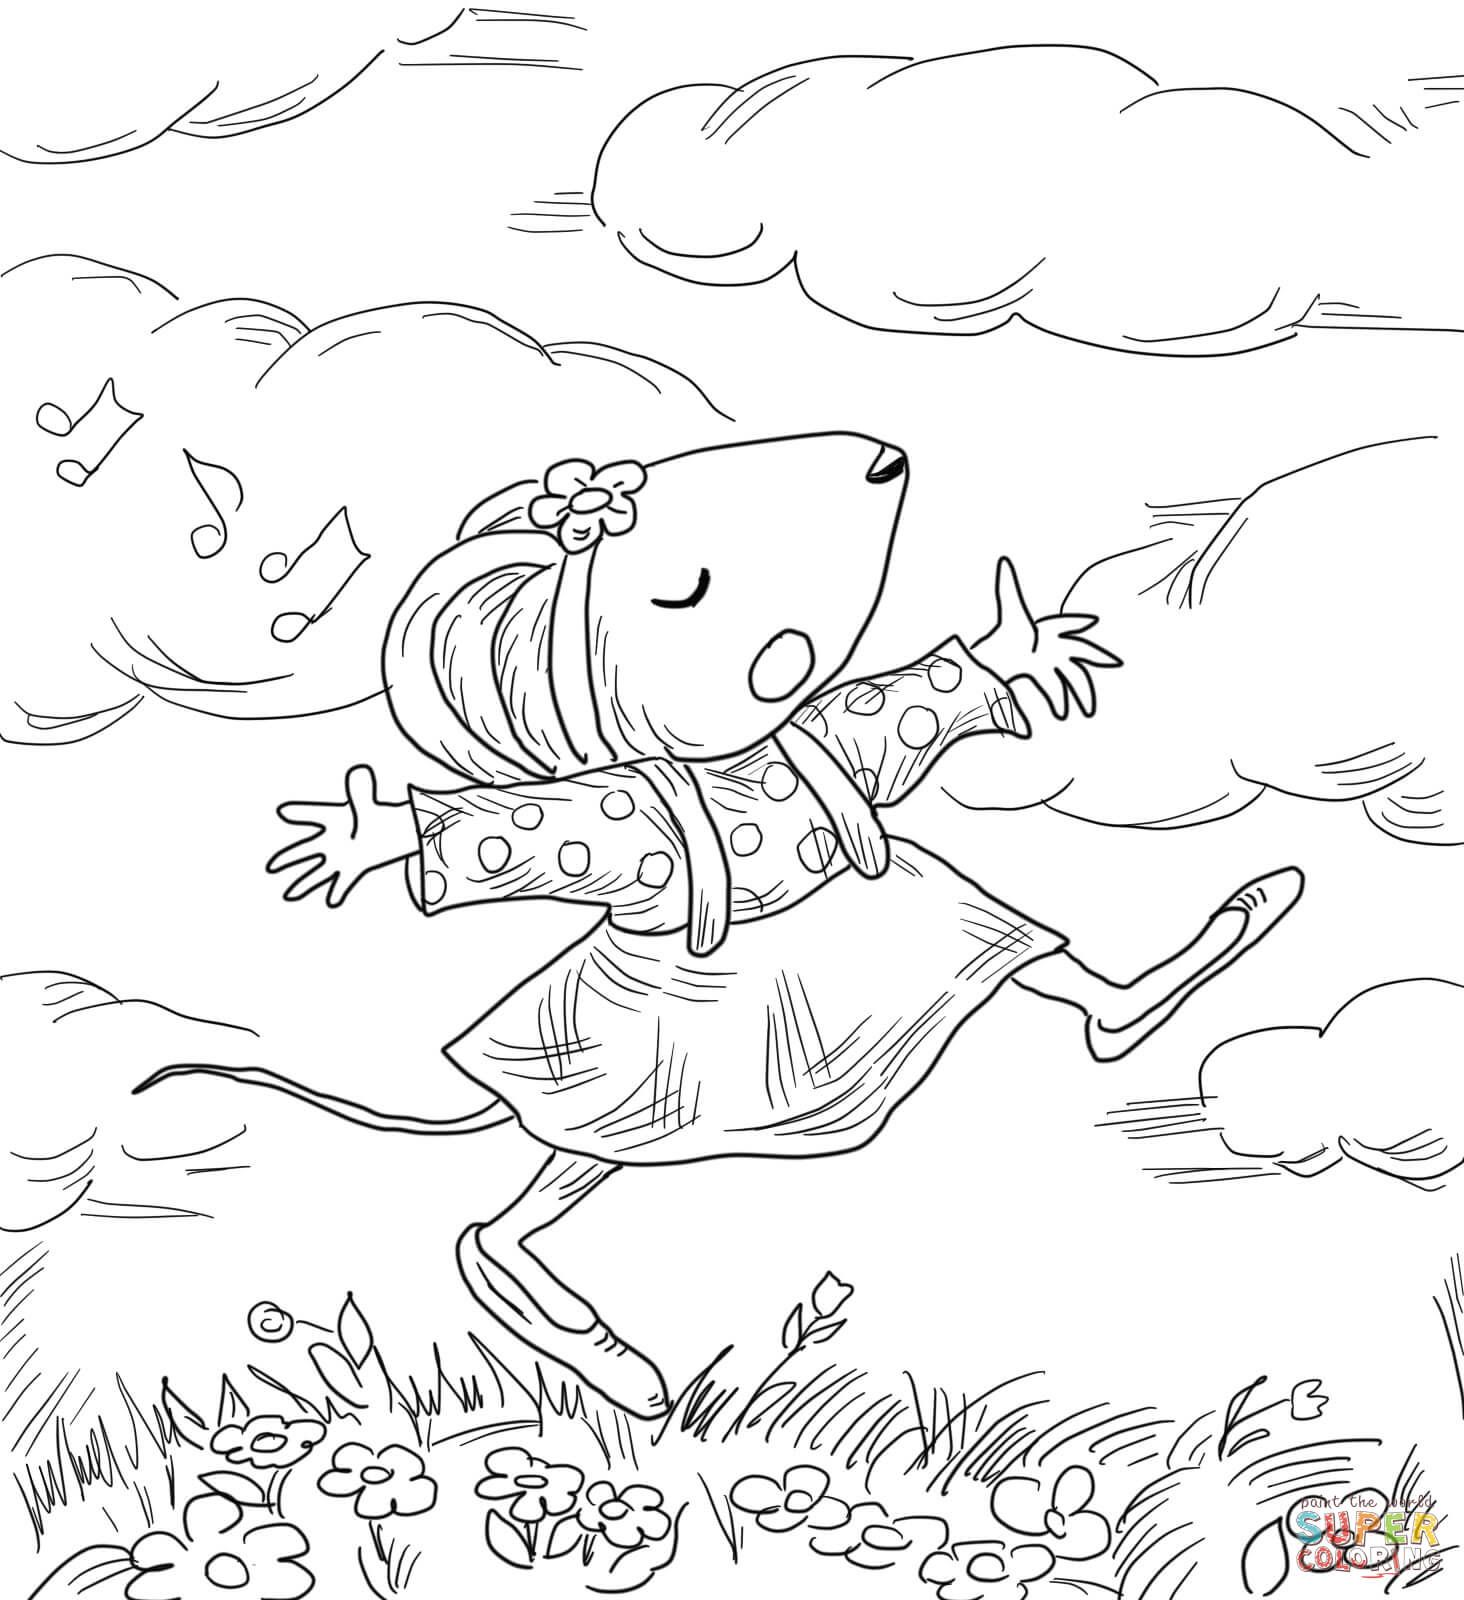 Kevin Henkes Chrysanthemum Chrysanthemum Penny And Her Free Coloring Pages Coloring Pages Bunny Coloring Pages